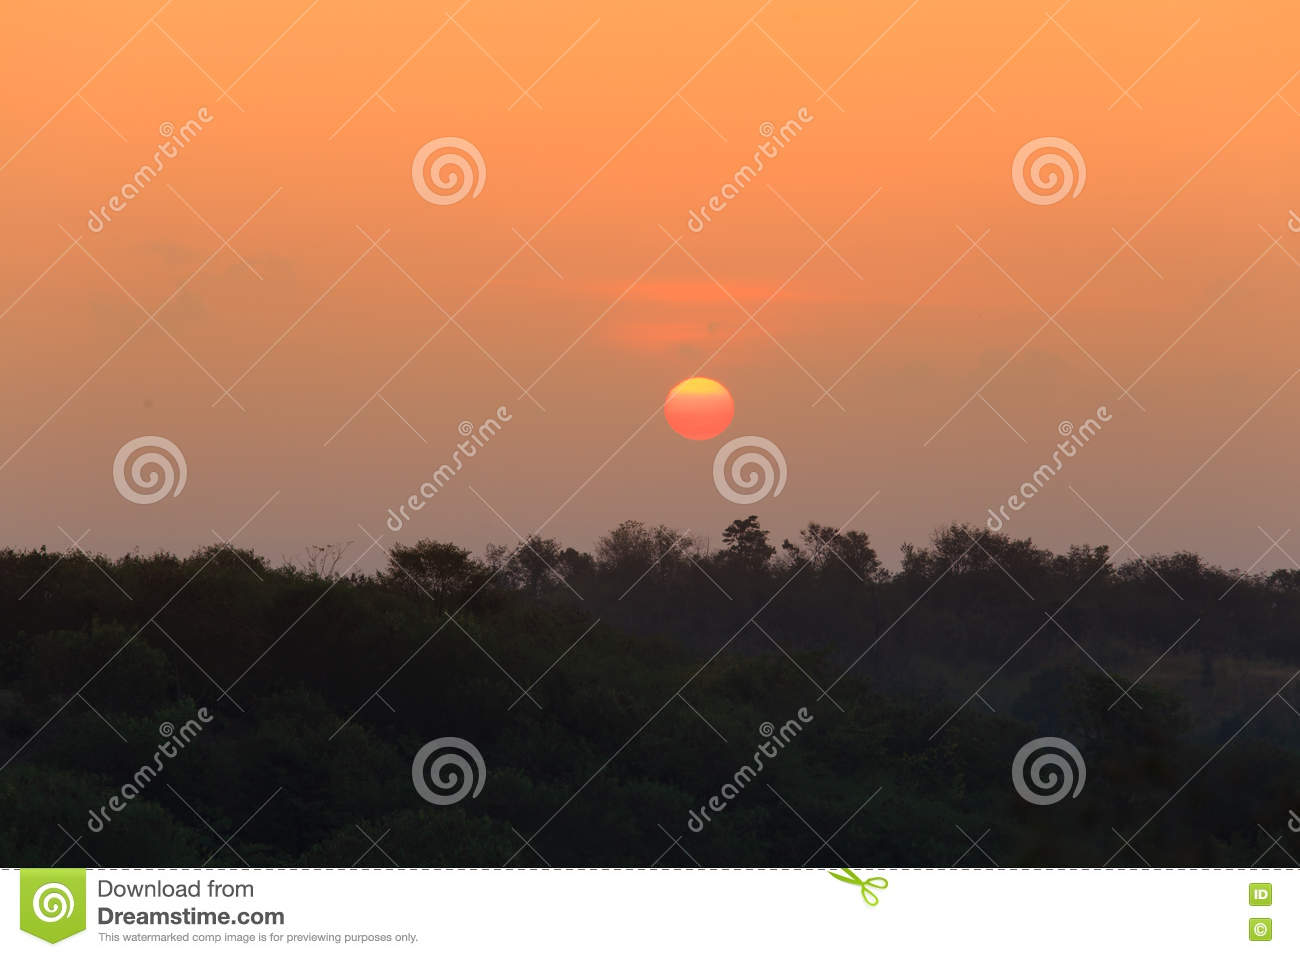 Sunrise over the distant hills